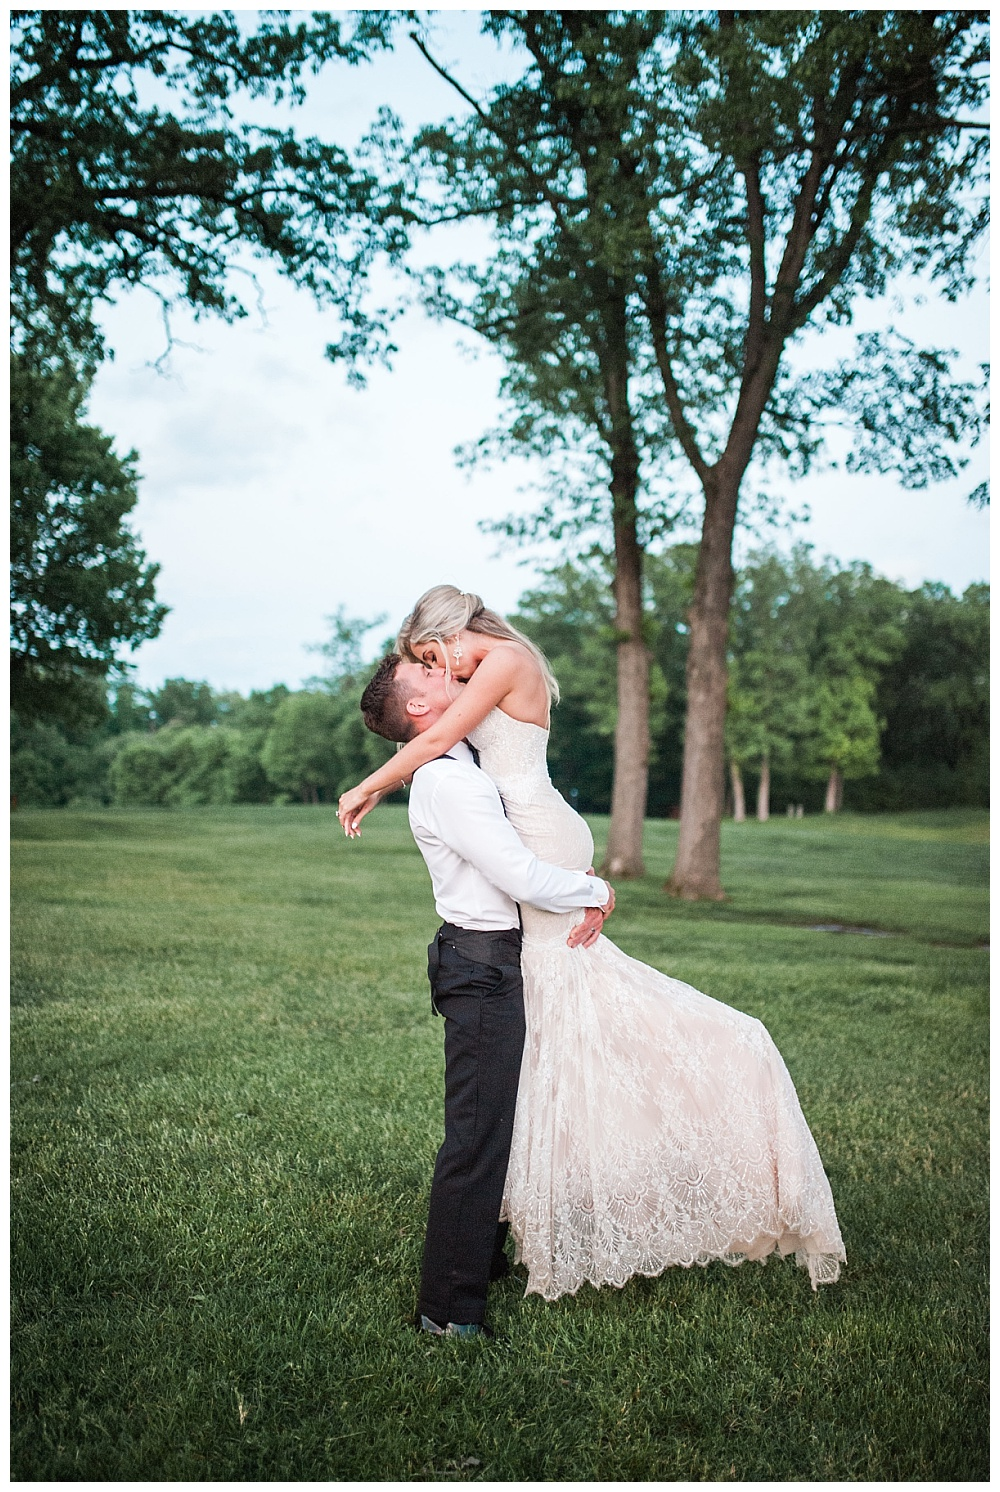 Stephanie Marie Photography TPC Deere Run Quad Cities Iowa City Wedding Photographer Ben Erin Dittmer_0088.jpg